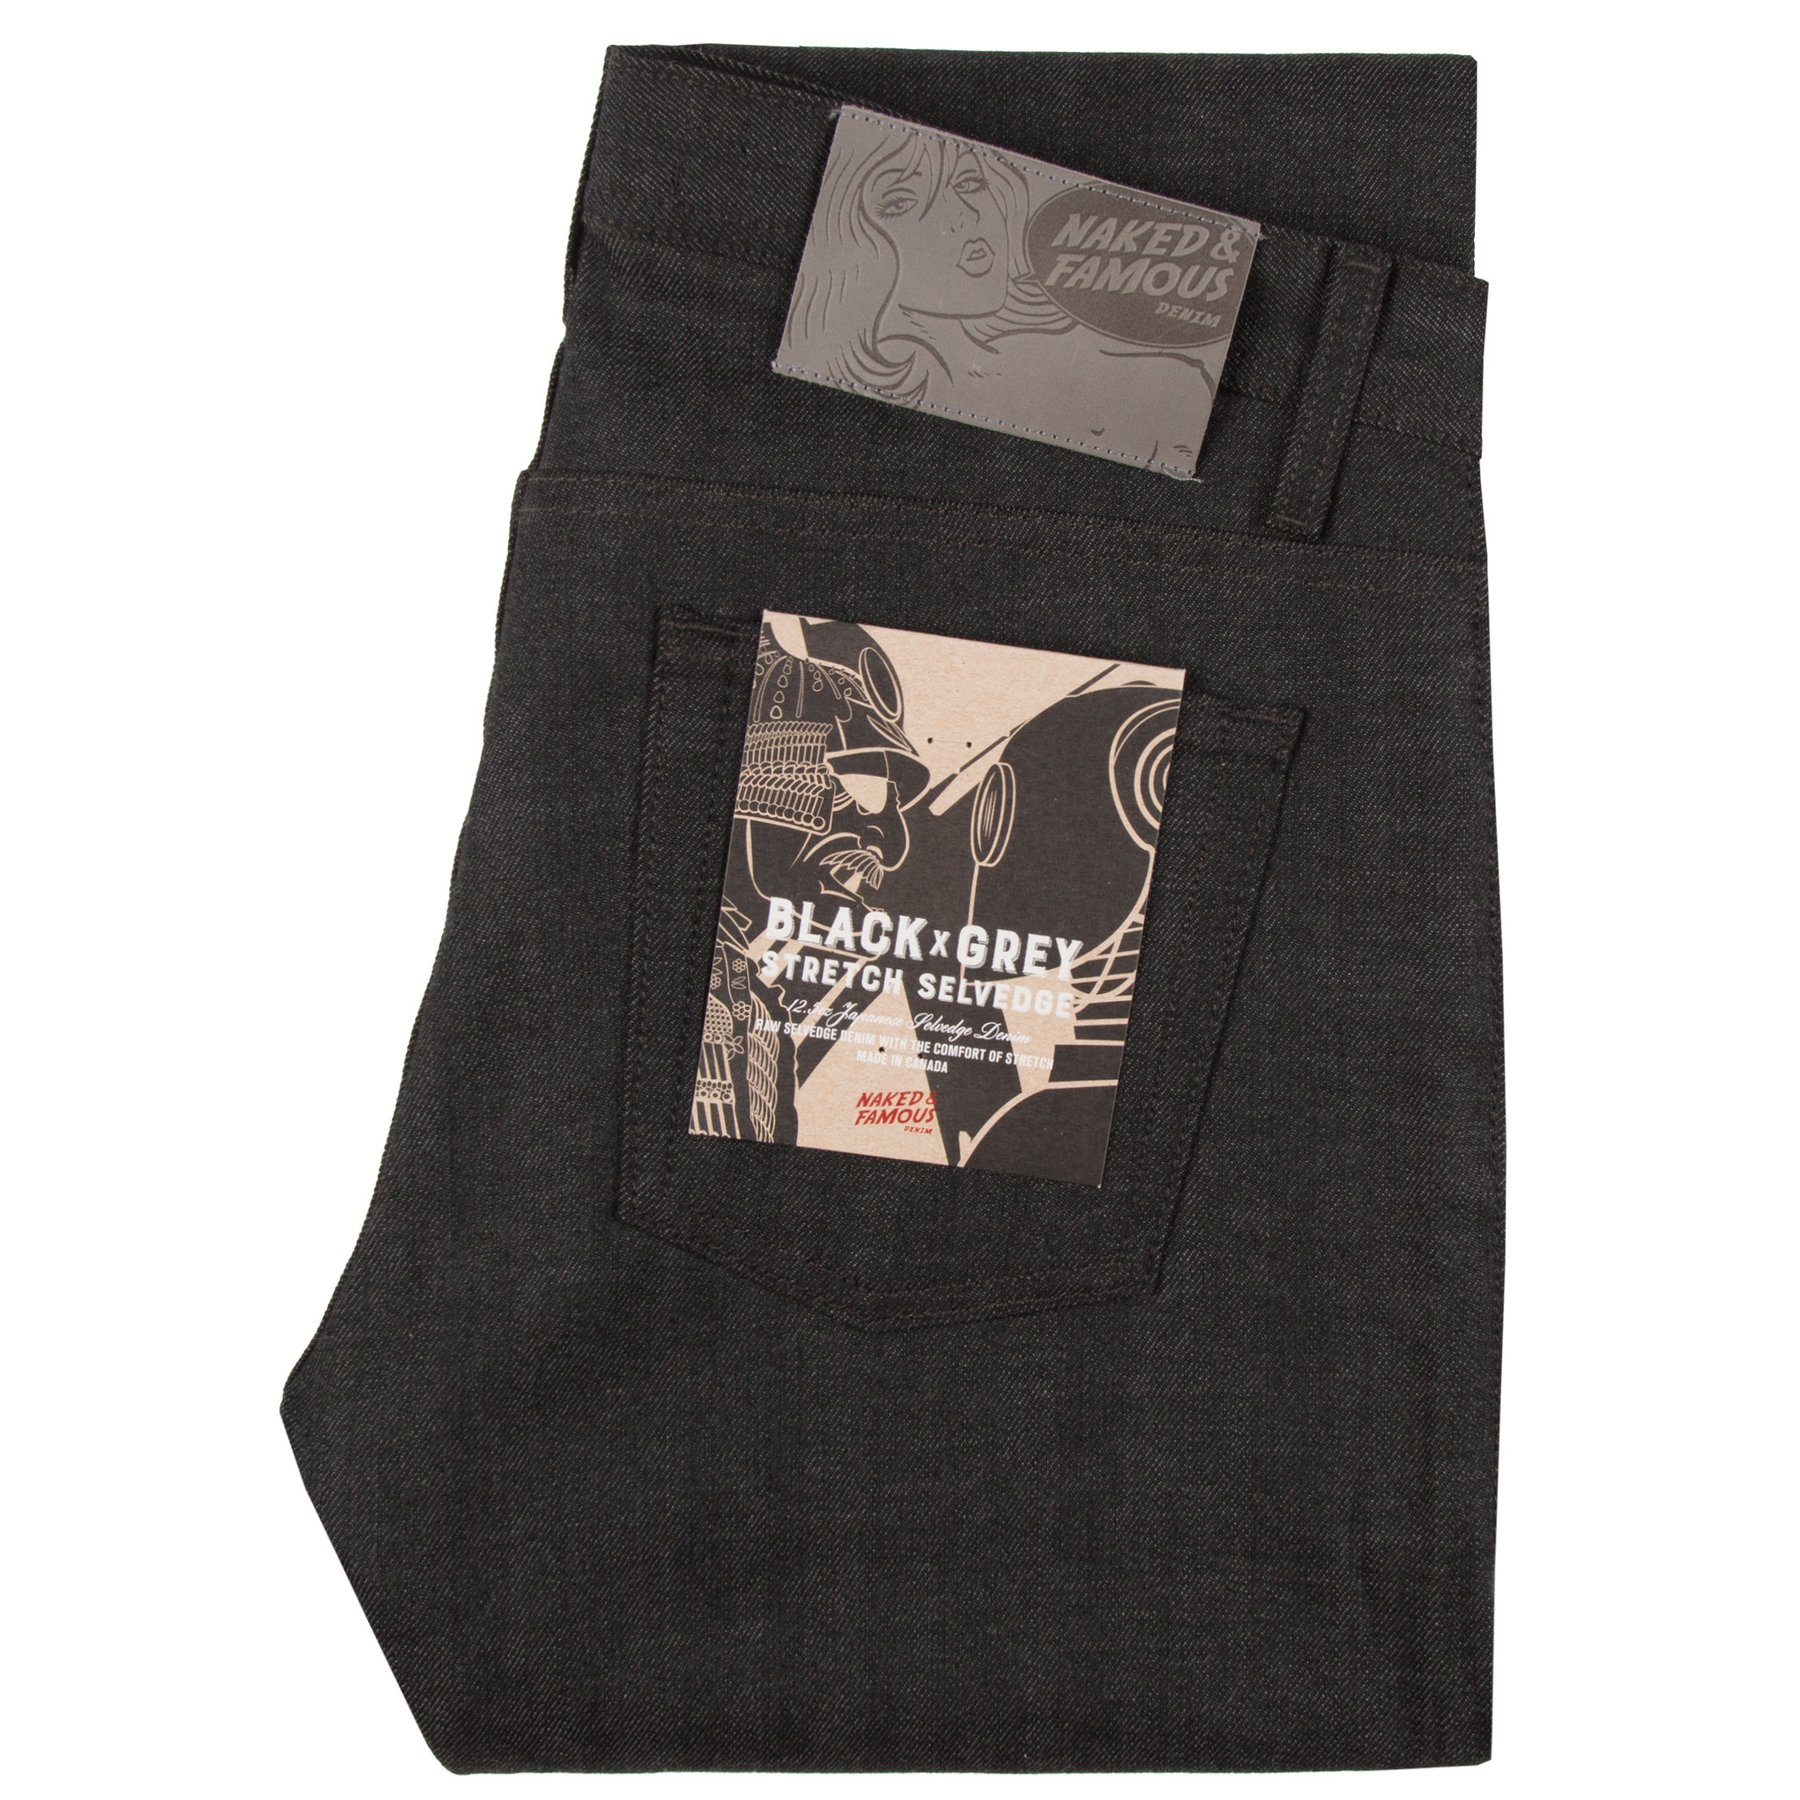 black x grey stretch selvedge - Super Guy / Weird Guy / Easy Guy